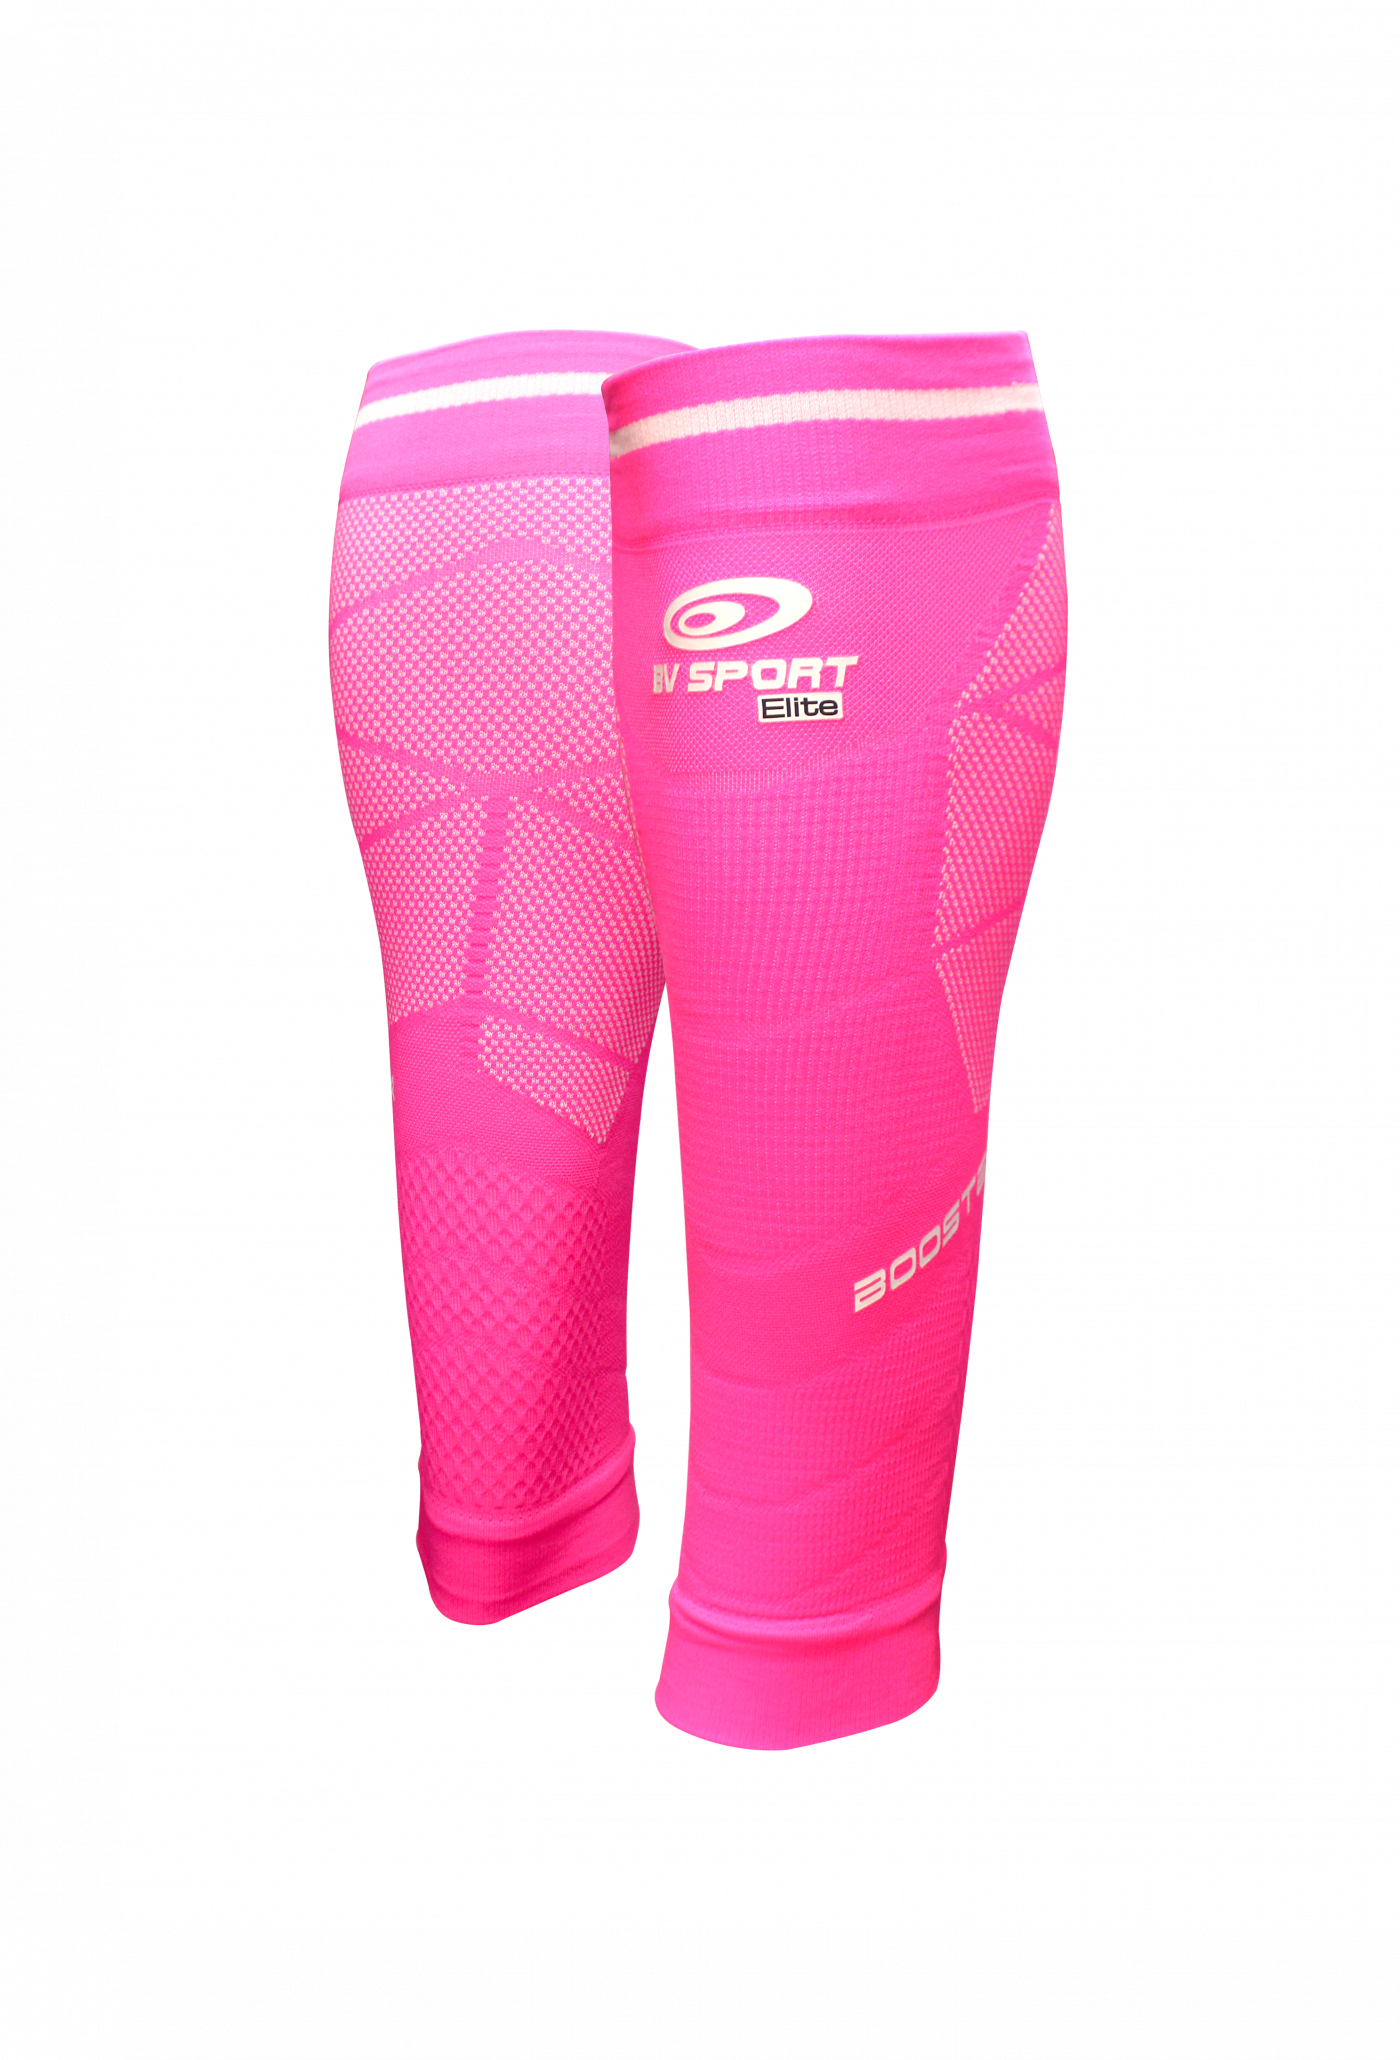 bv-sport-booster-elite-evo2-rose